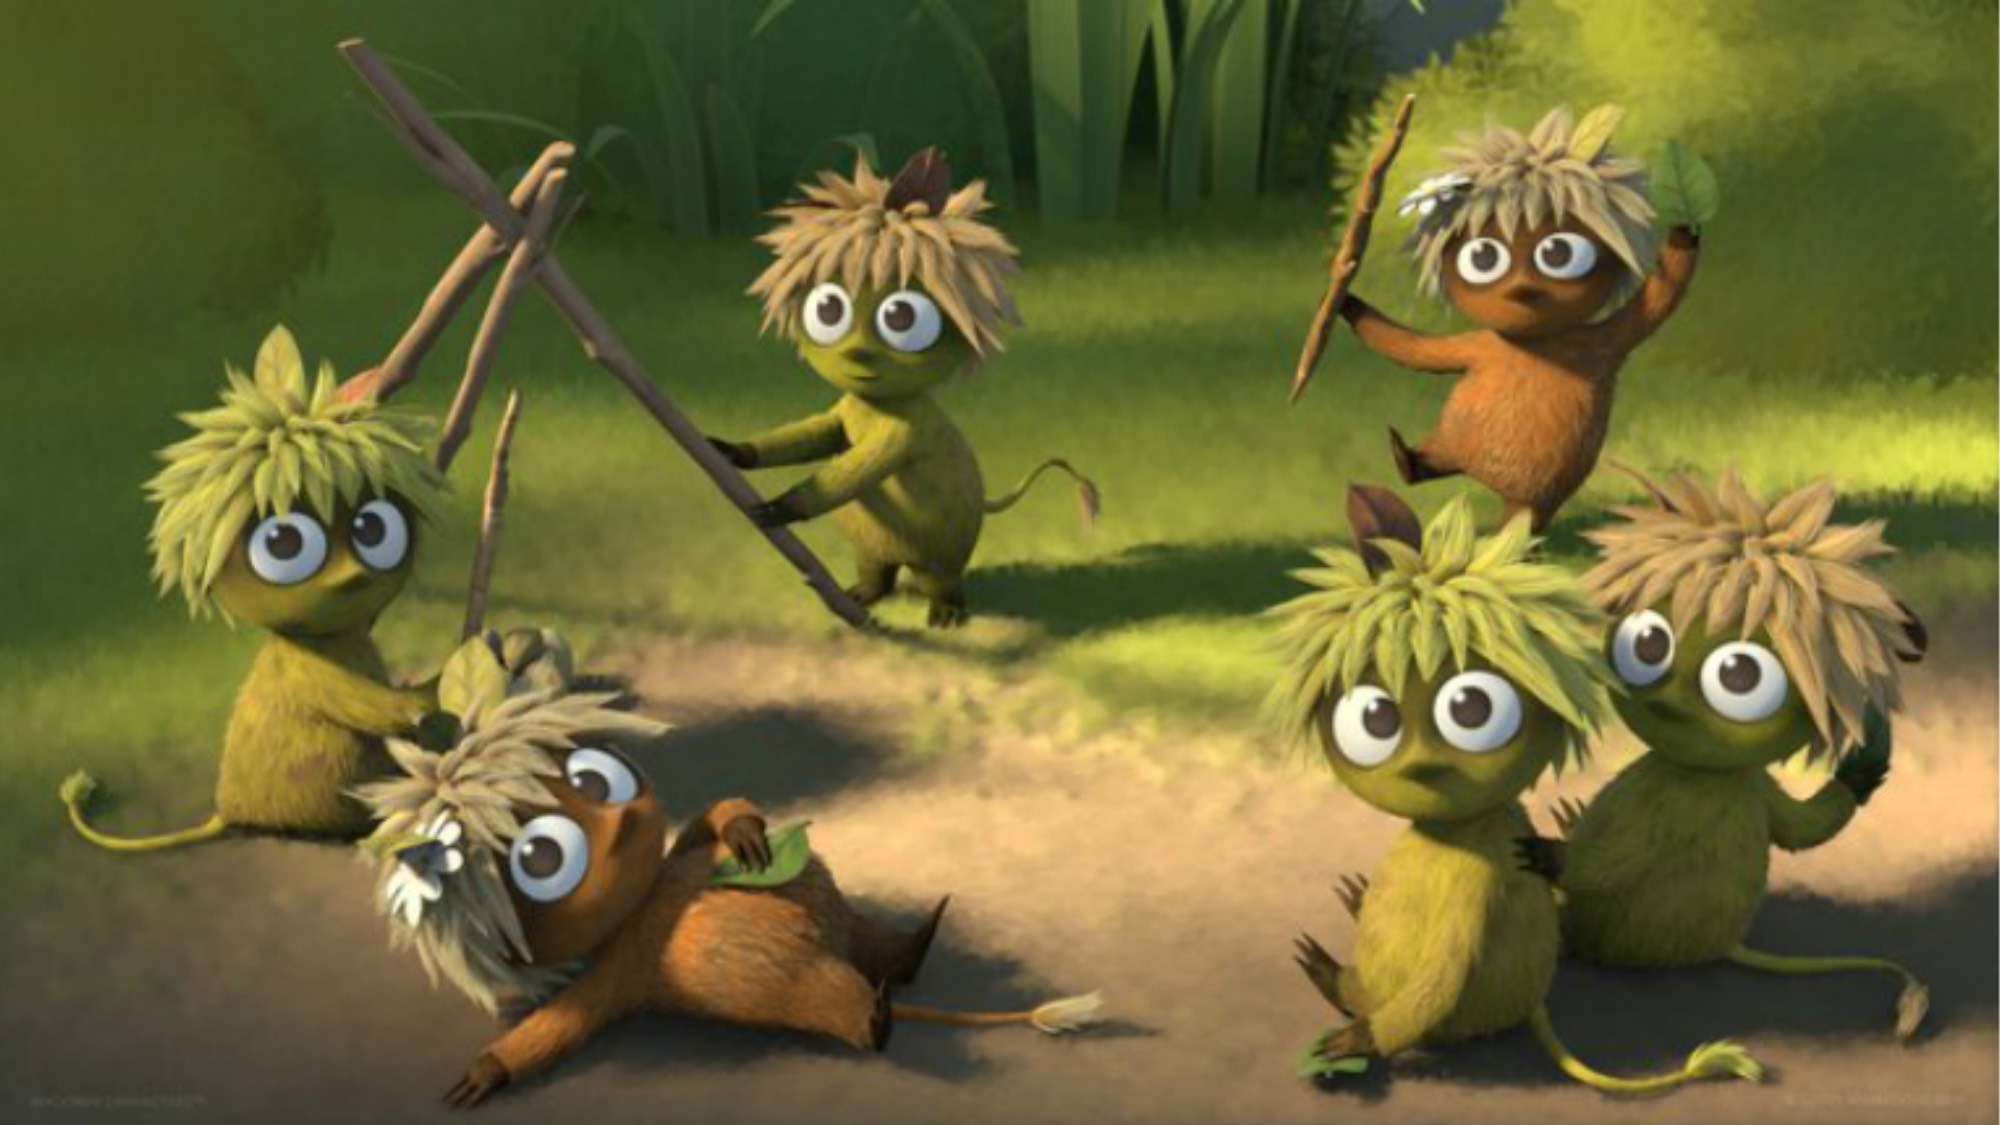 Animated woodies characters playing in the woods